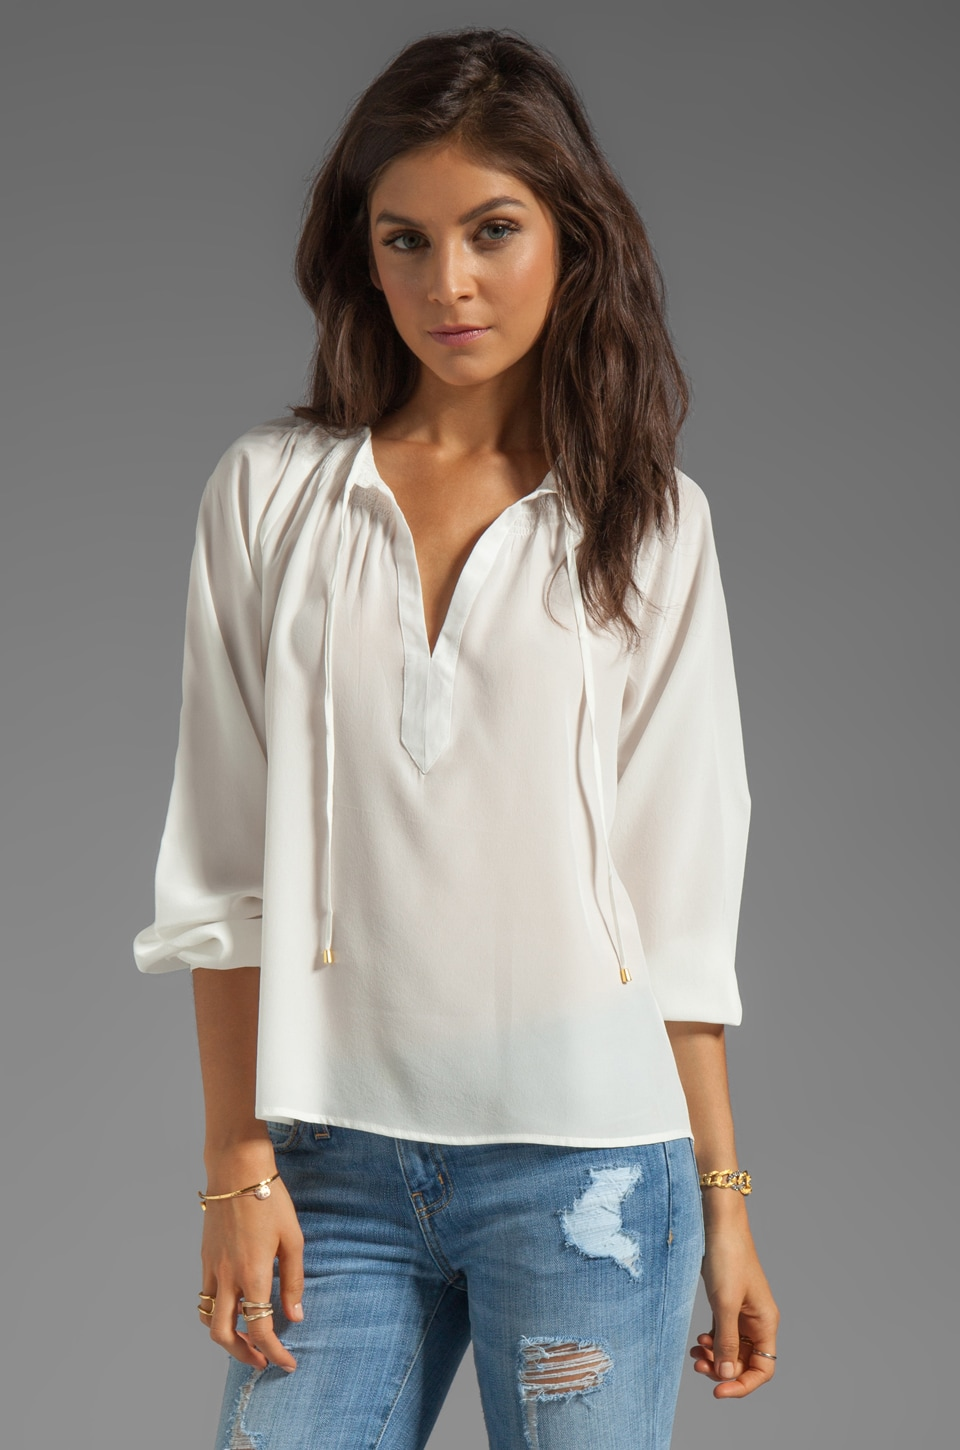 Yumi Kim Sydney Top in White